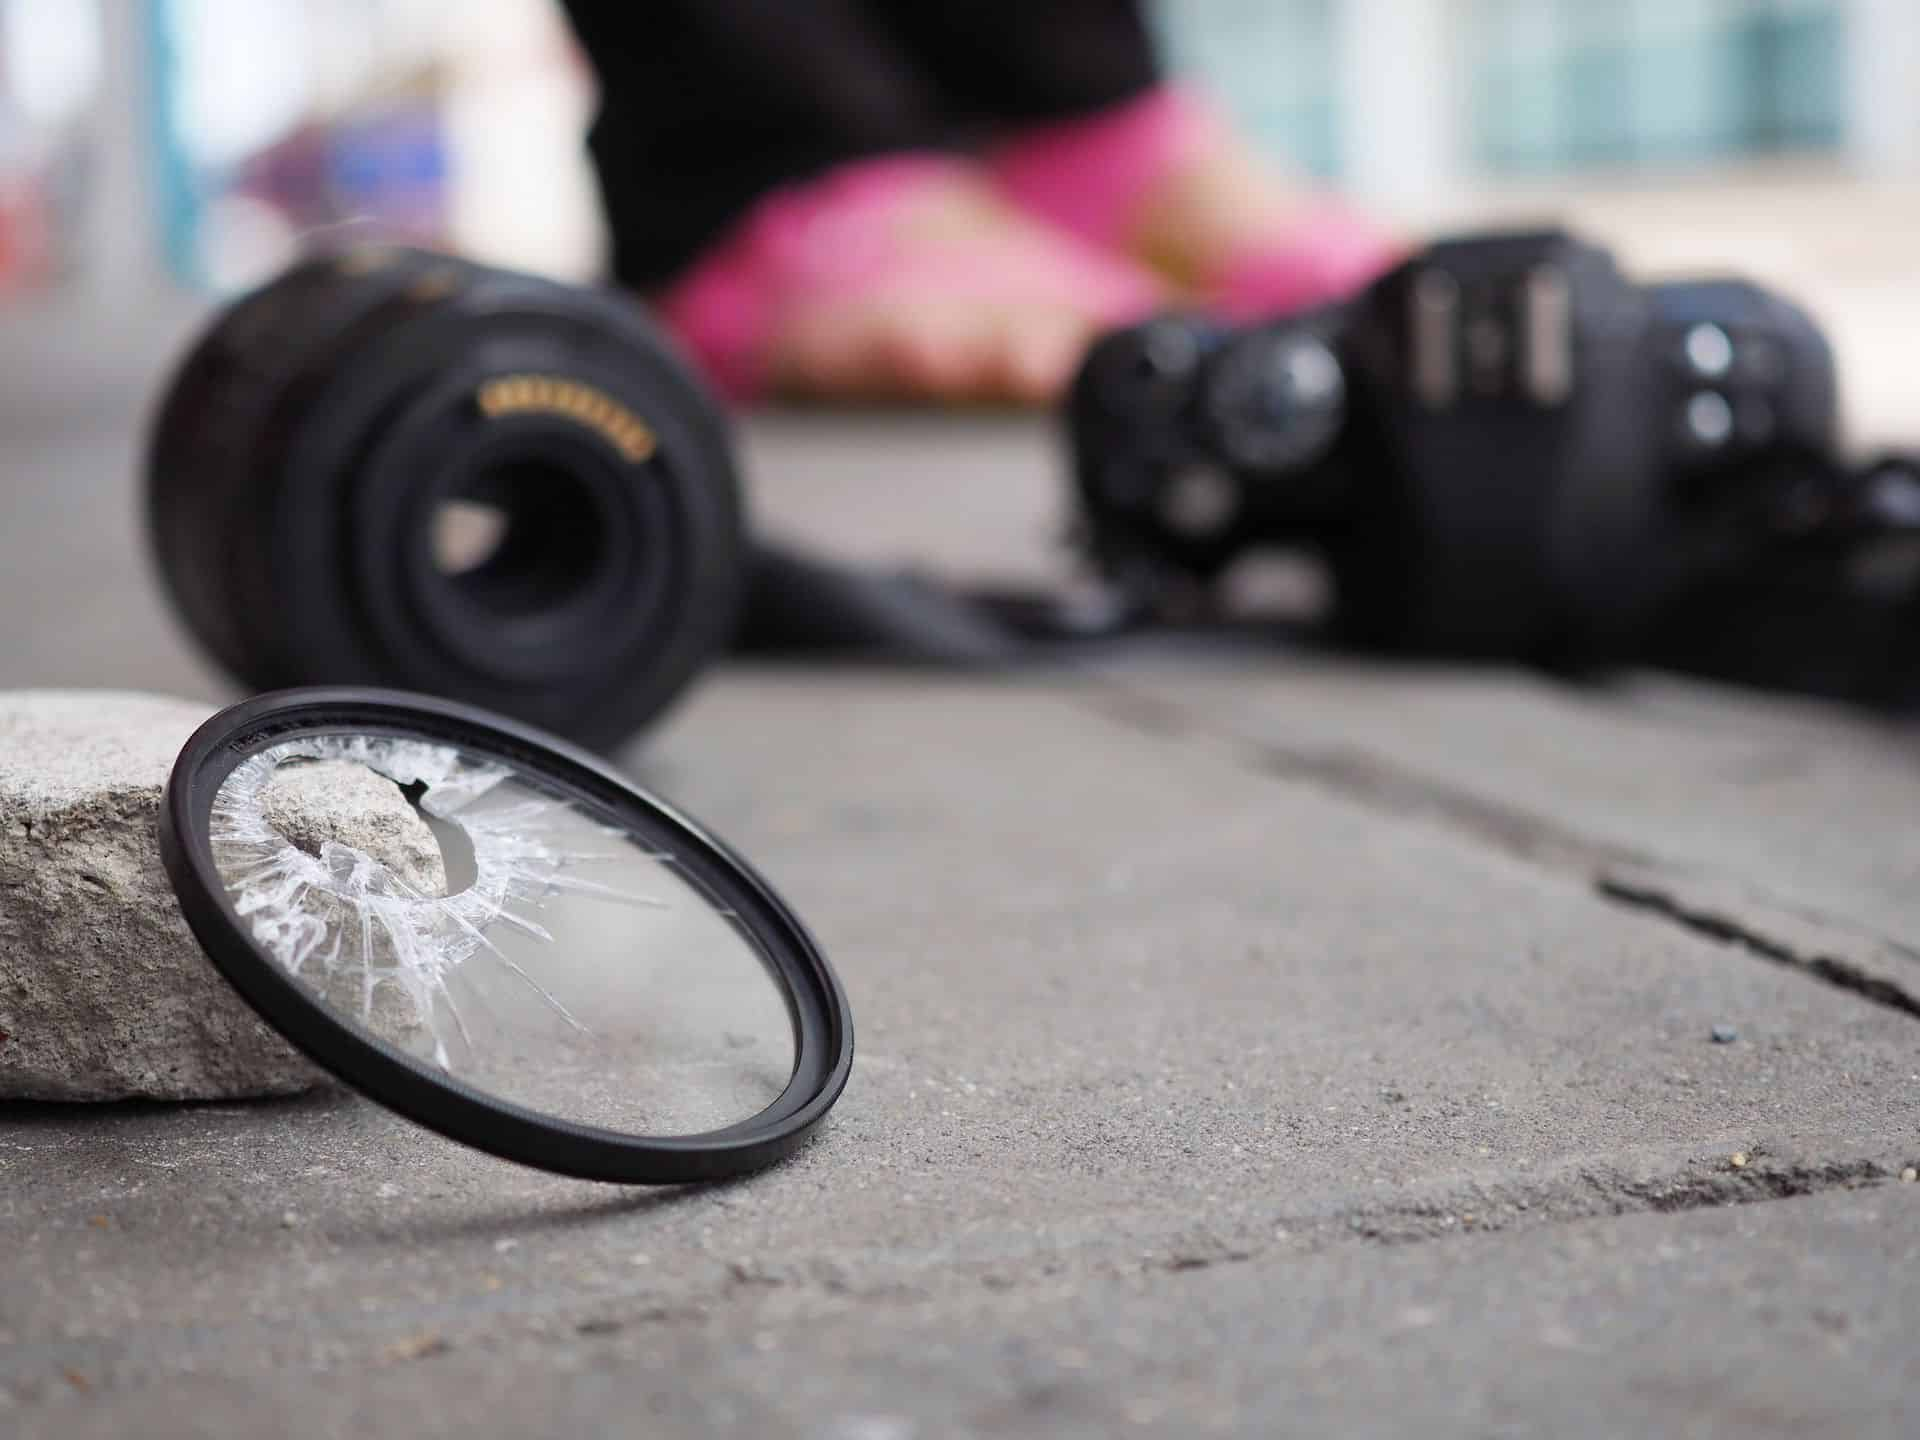 Dropped Camera? Broken Lens? Here's Exactly What to Do